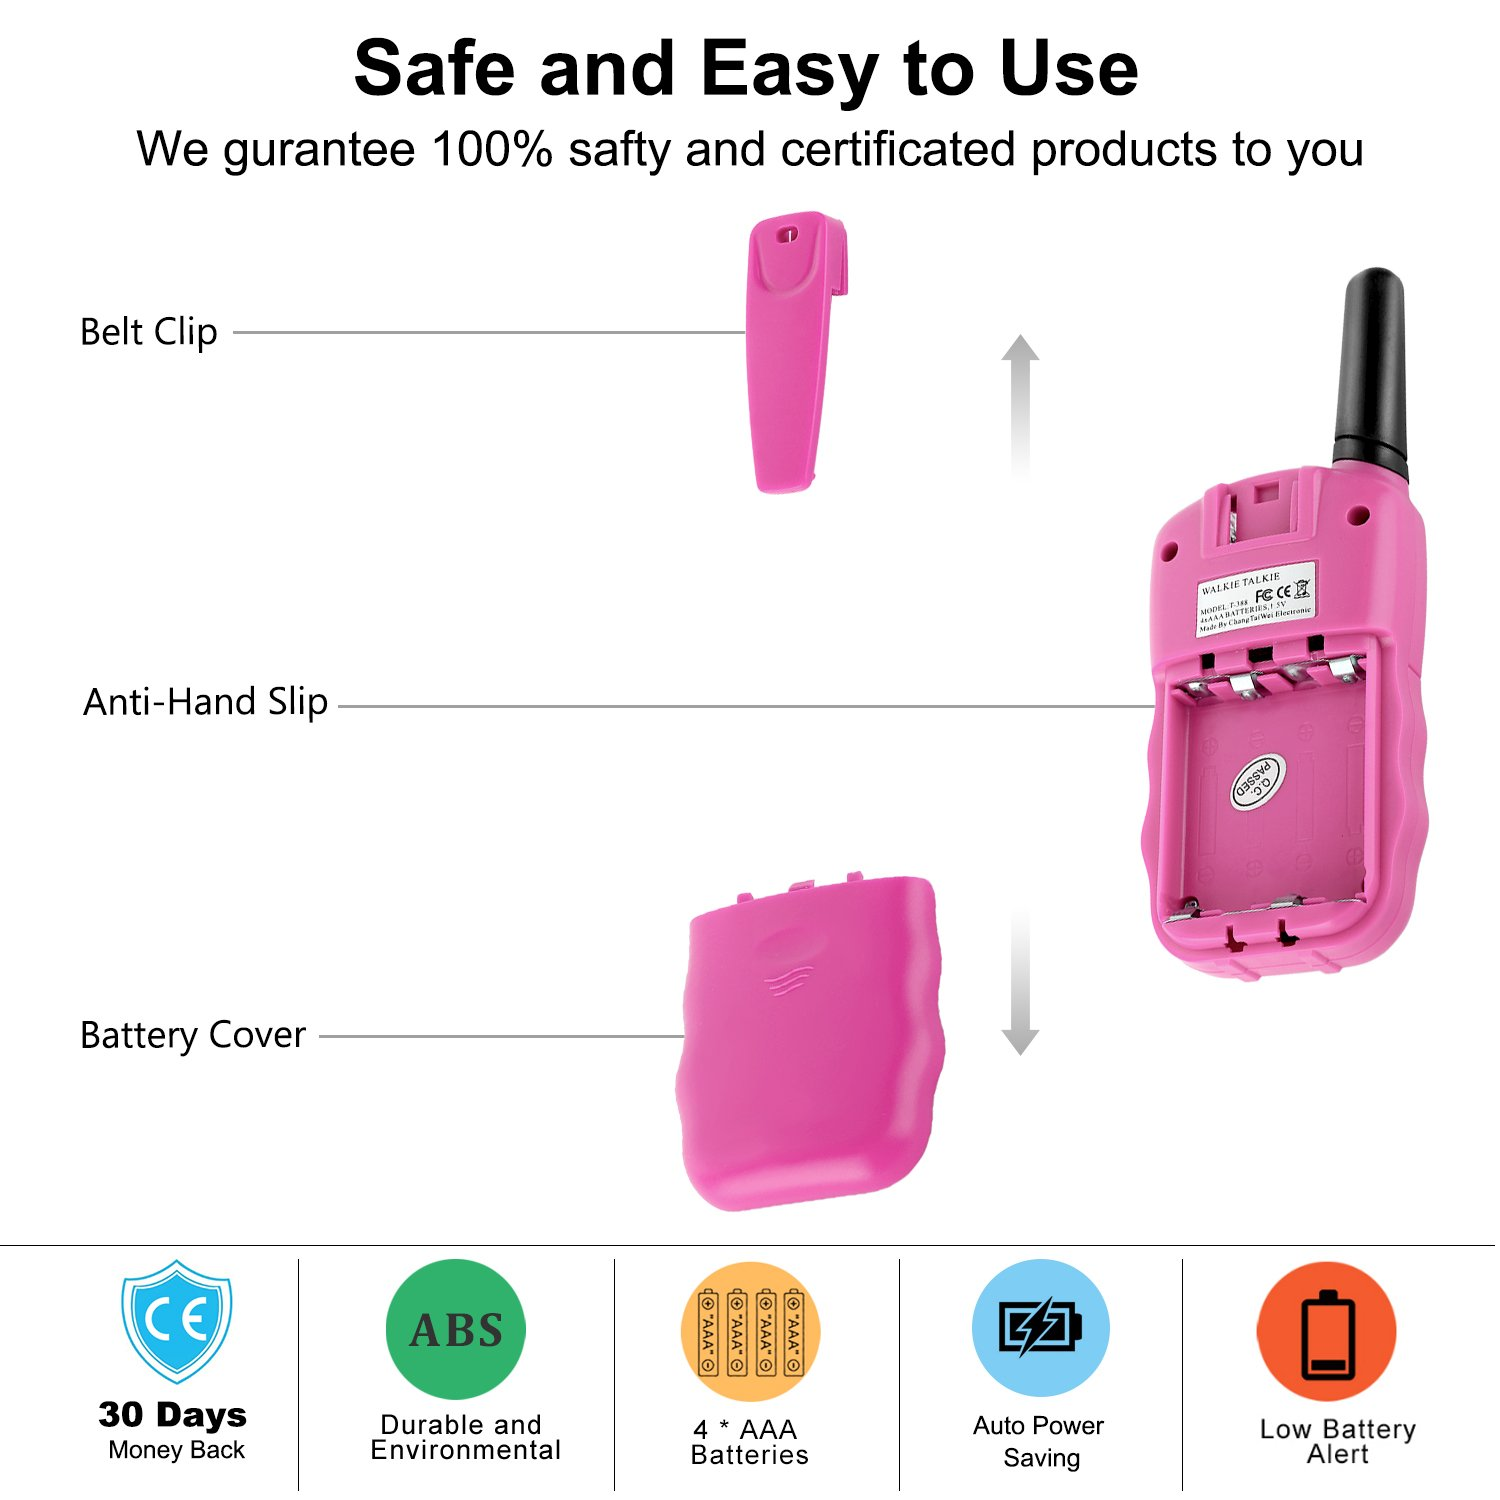 Wishouse Walkie Talkie Kids Toy Set,Best Gifts Easy use Two Way Radios for Girls, 22 Chanels 3 Miles Long Range Cool Vox walky Talky for Camping Hiking Fishing Outdoors(T388 Pink, 2 Pairs) by Wishouse (Image #7)